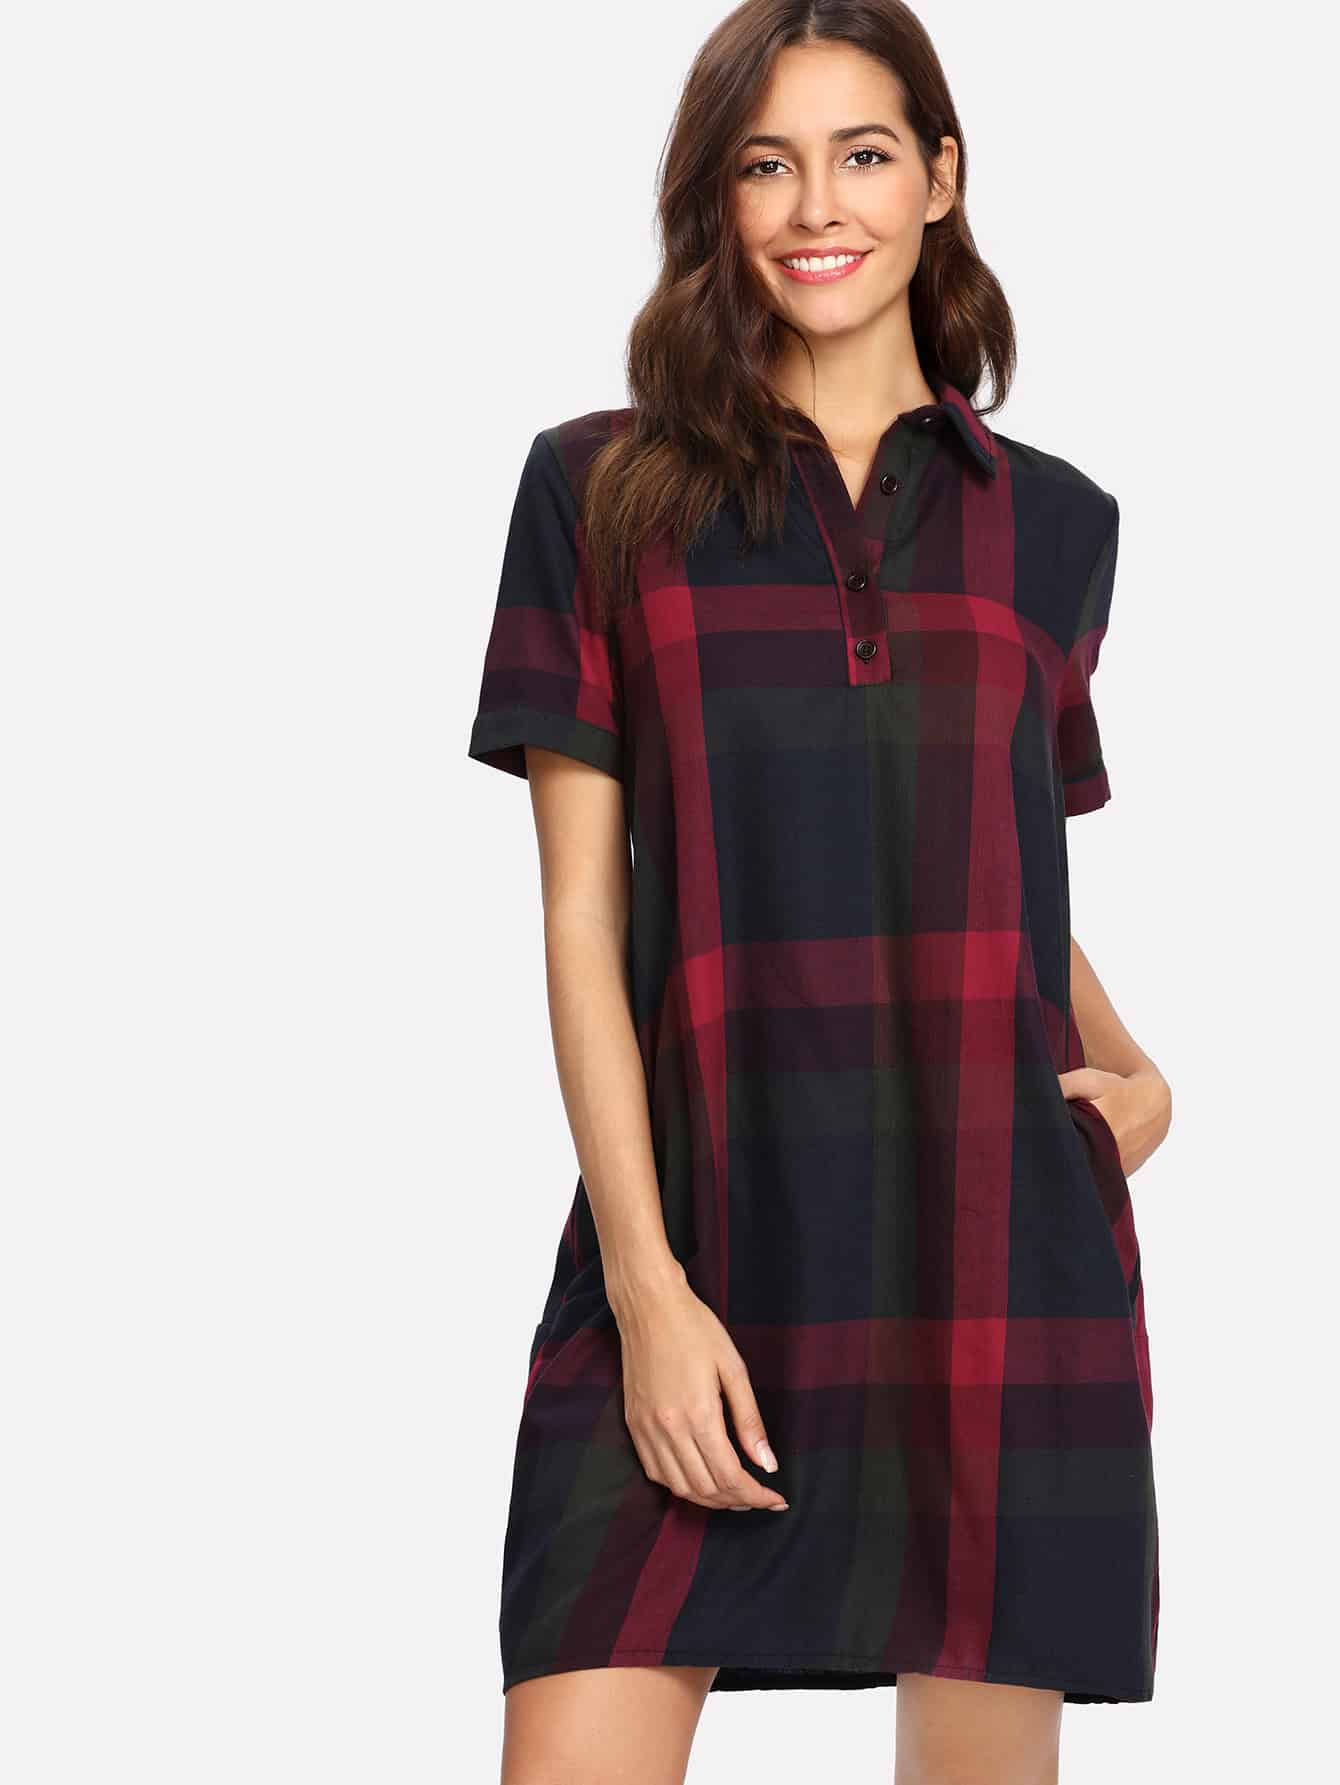 Tartan Plaid Shirt Dress цена и фото